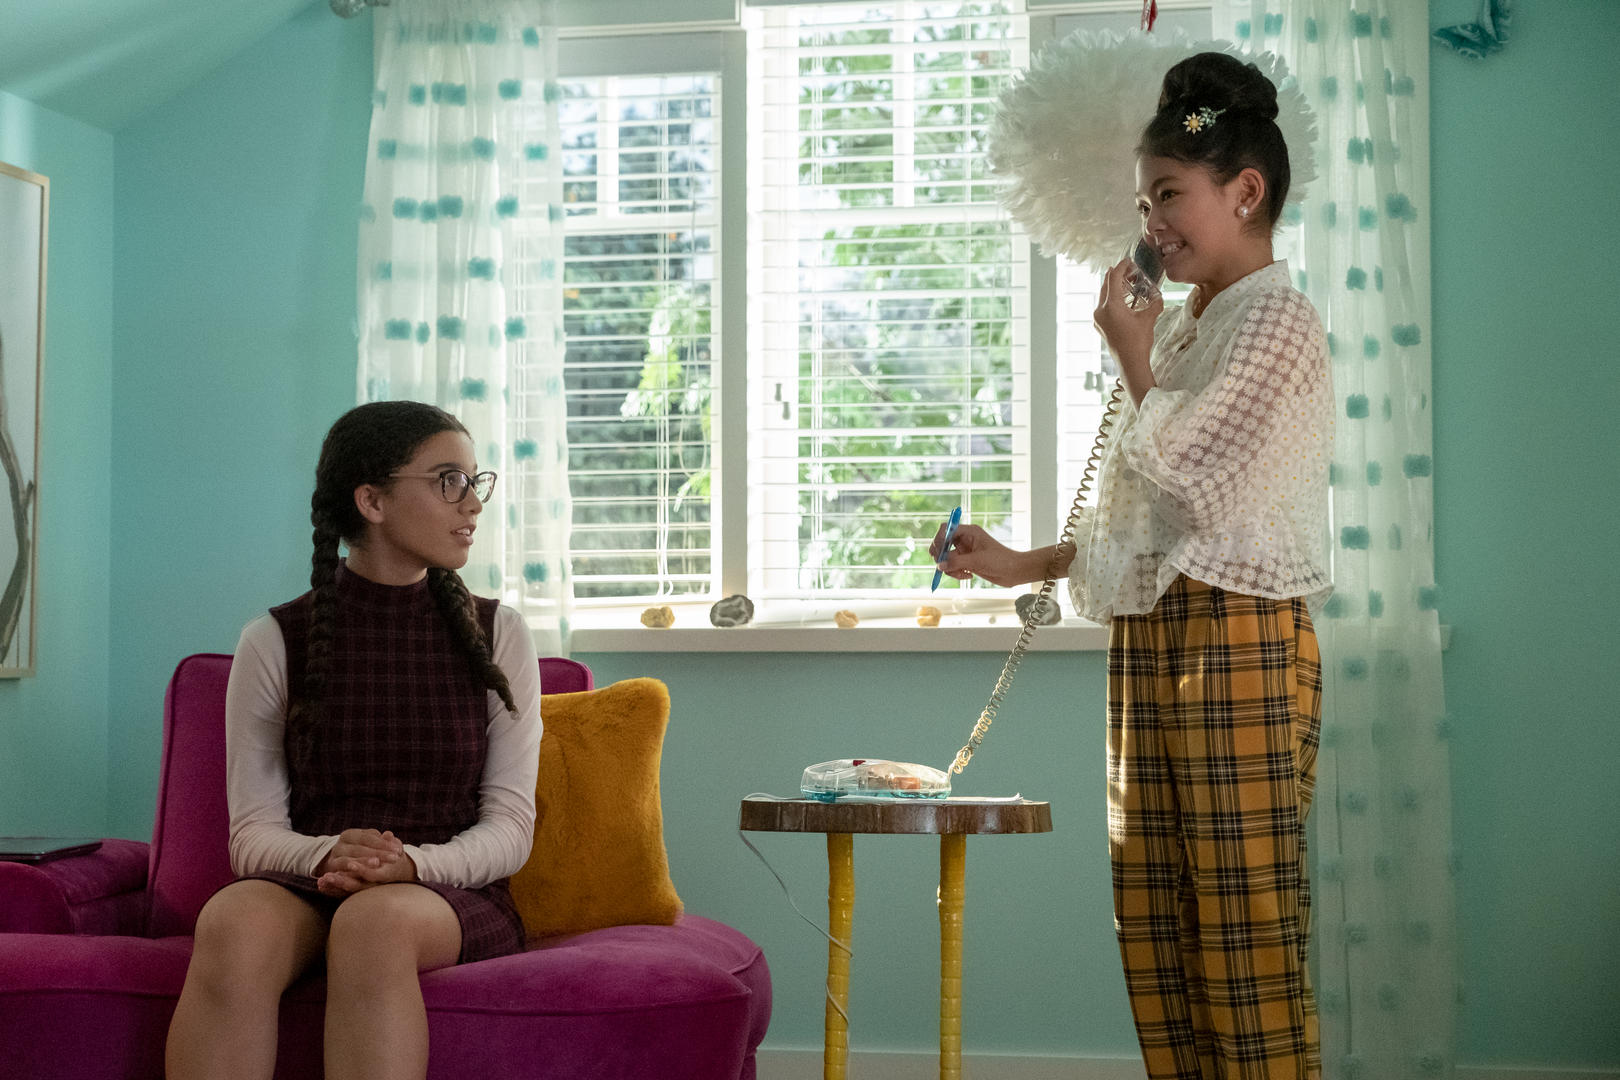 'The Baby-Sitters Club' (2020) Season One Review: Fun coming of age series for today's kids